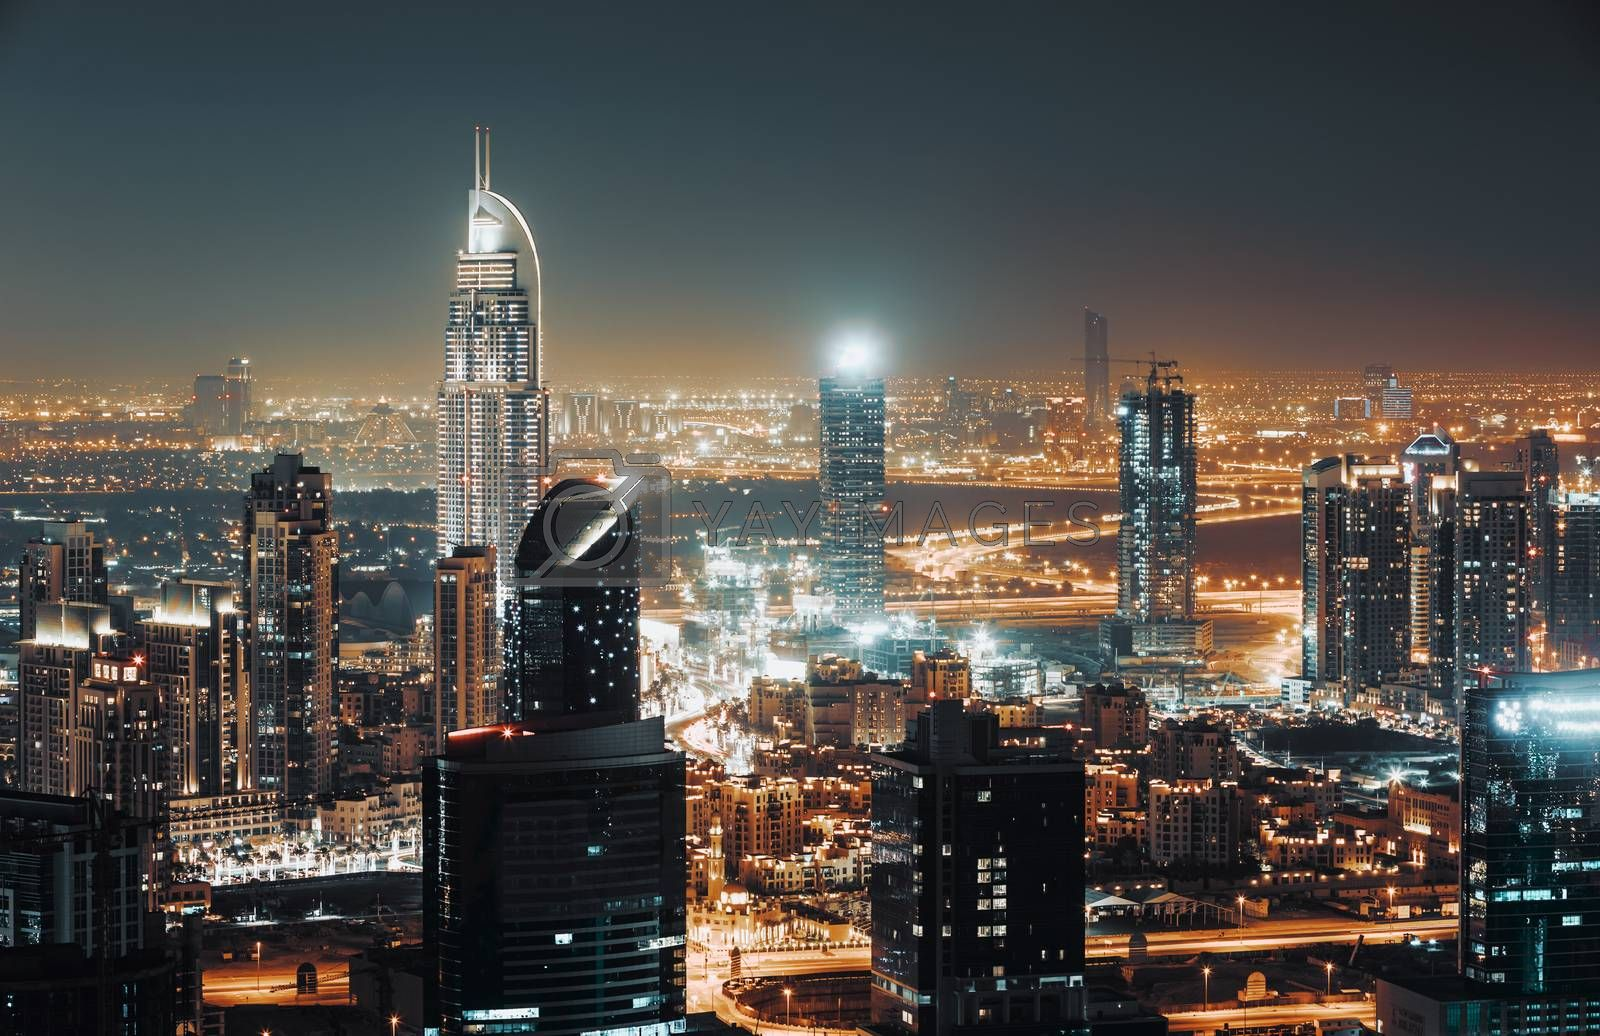 Beautiful Cityscape of a Modern Futuristic Buildings and Towers in the Lights of a Night City. Beauty of Luxury Life of Emirates. Dubai. United Arab Emirates.